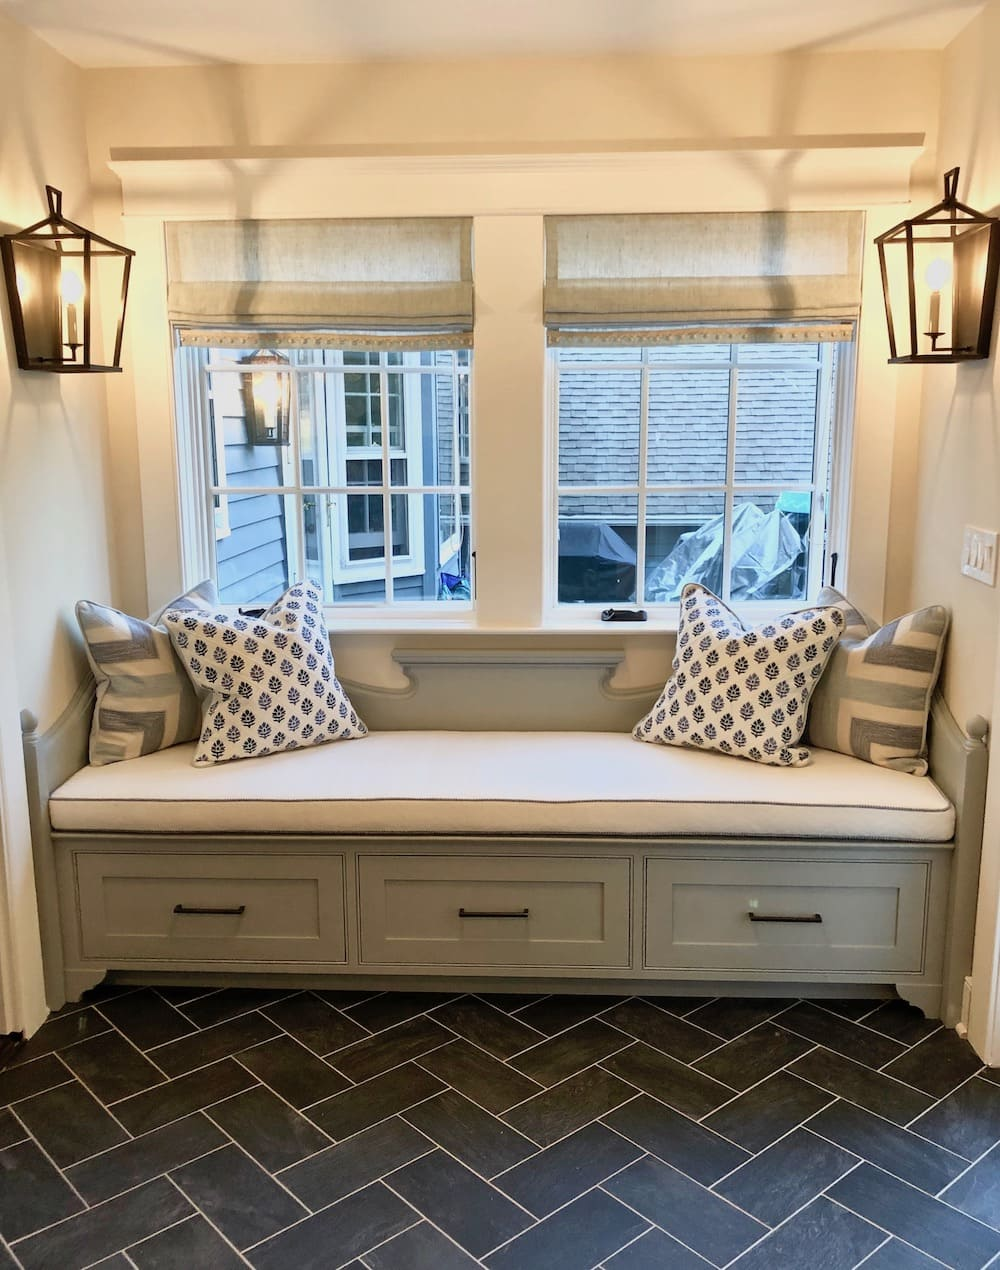 Built-In Storage Bench in sunroom